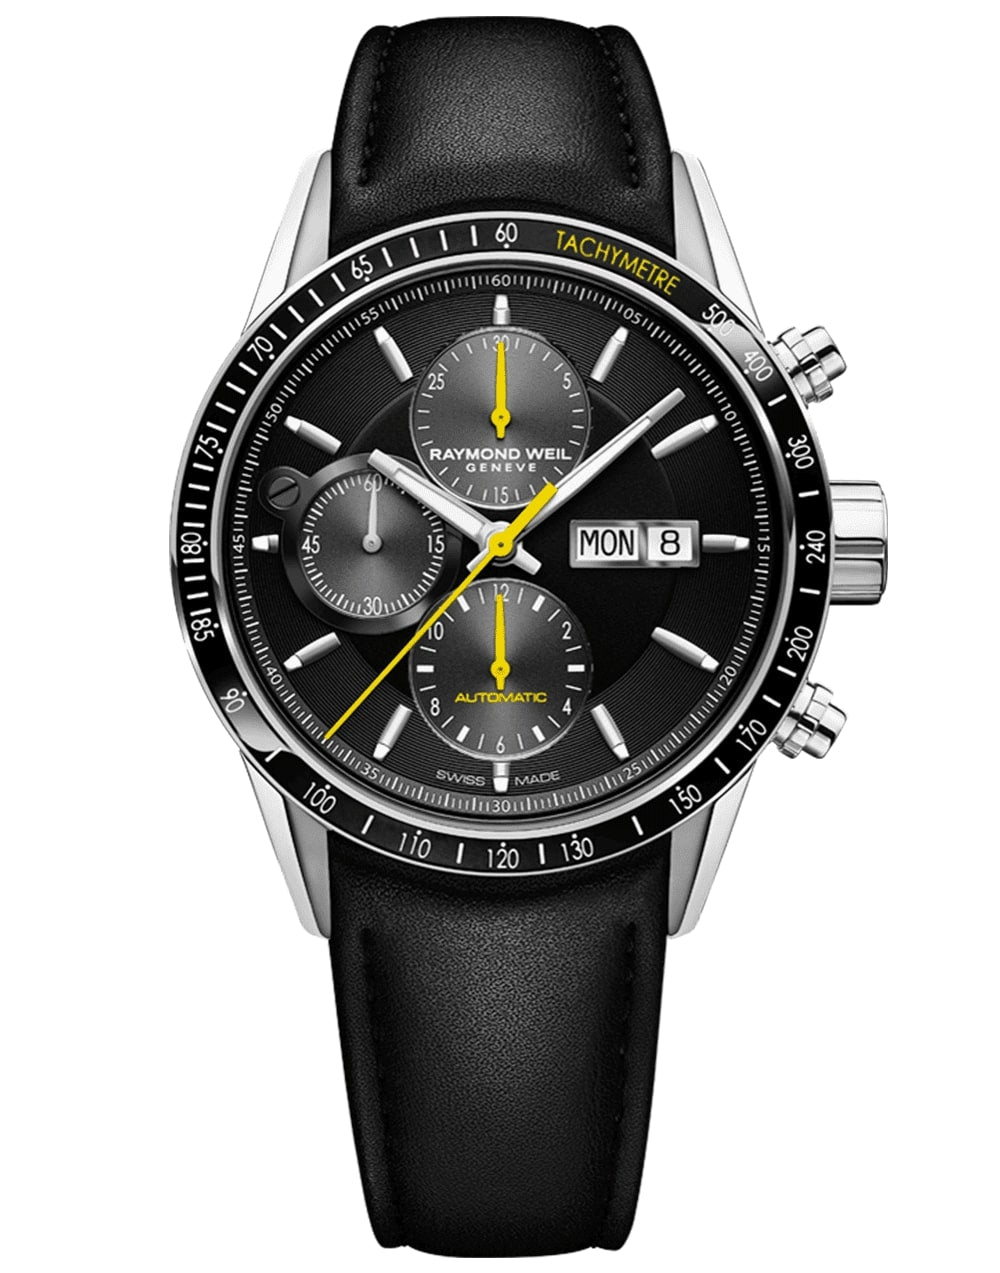 Men's  Black Automatic Chronograph Raymond Weil Watch